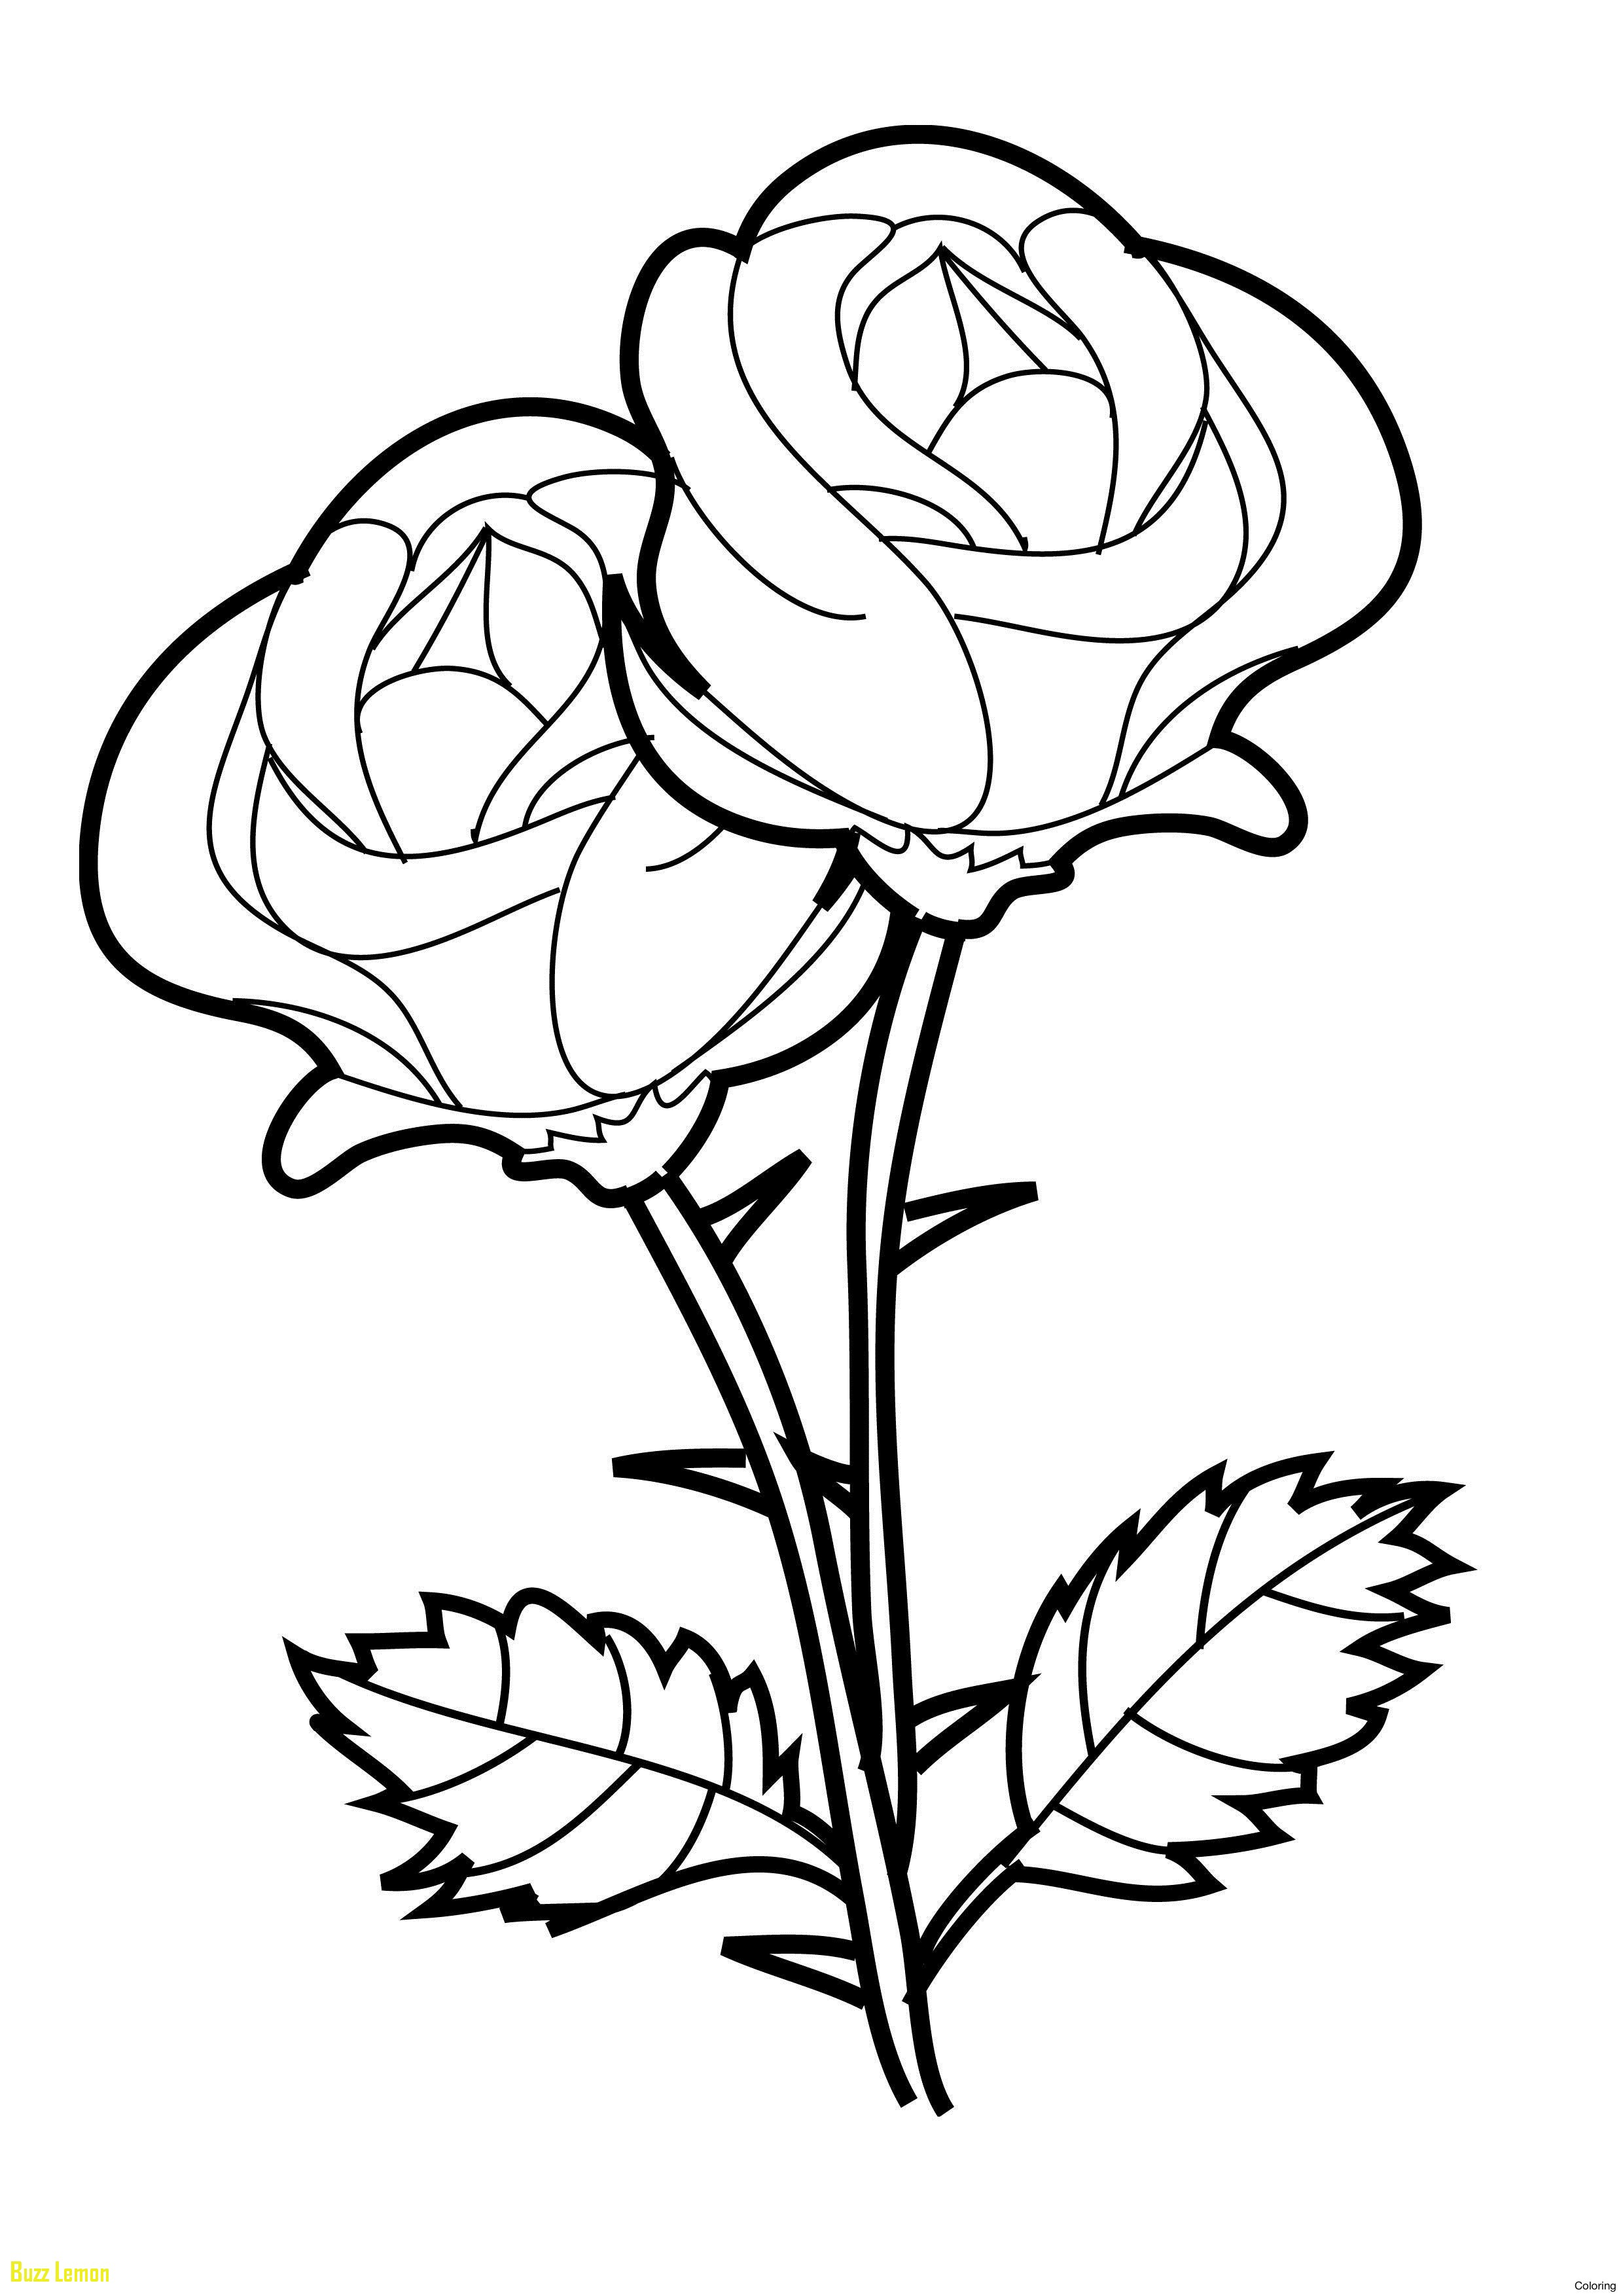 2480x3508 Rose Colored Sheets Unique Rose Coloring Pages For Kids Roses